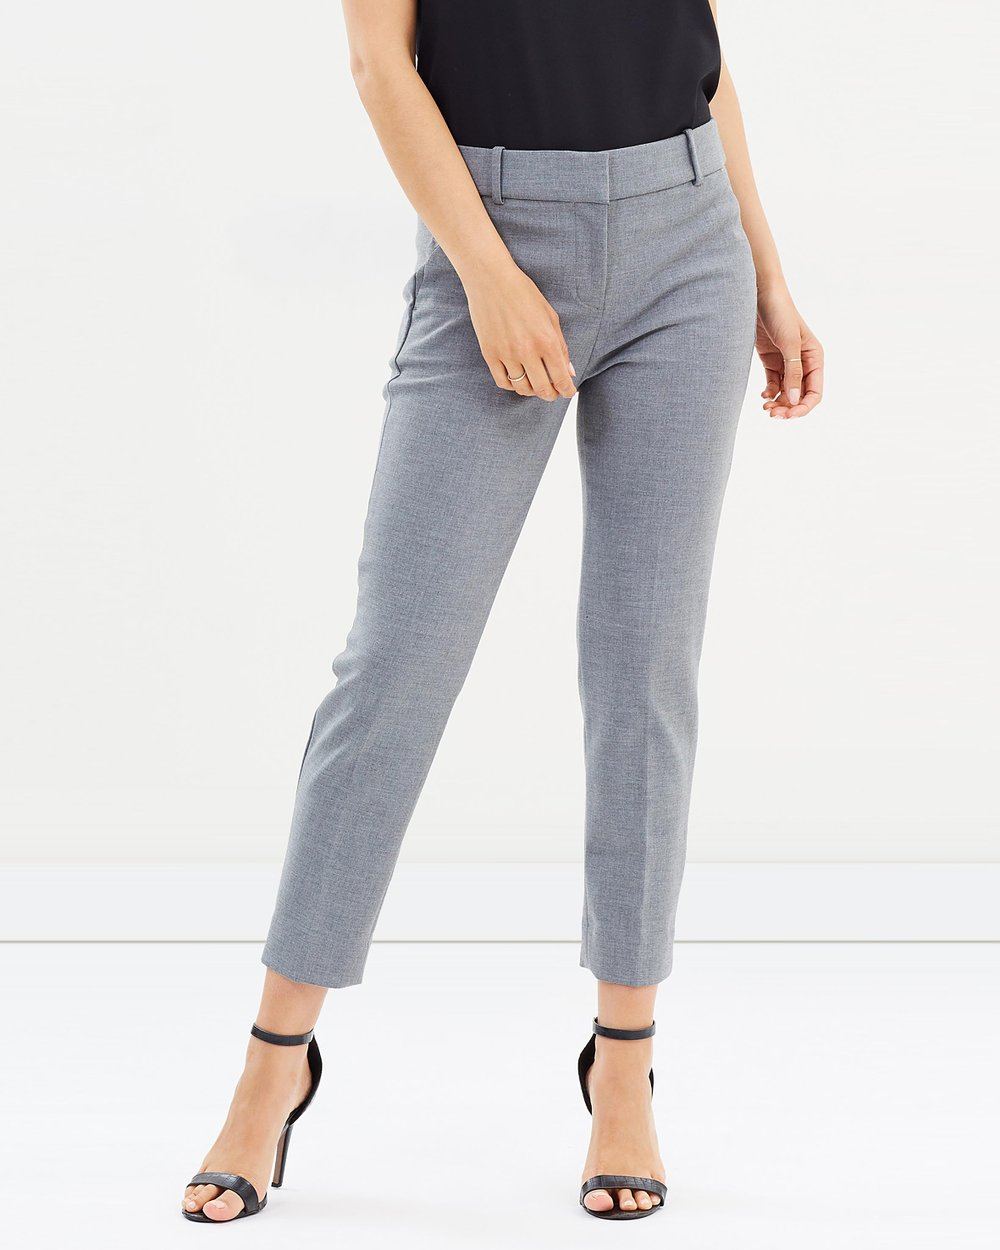 41e03079359 Cameron Seasonless Stretch Pants by J.Crew Online